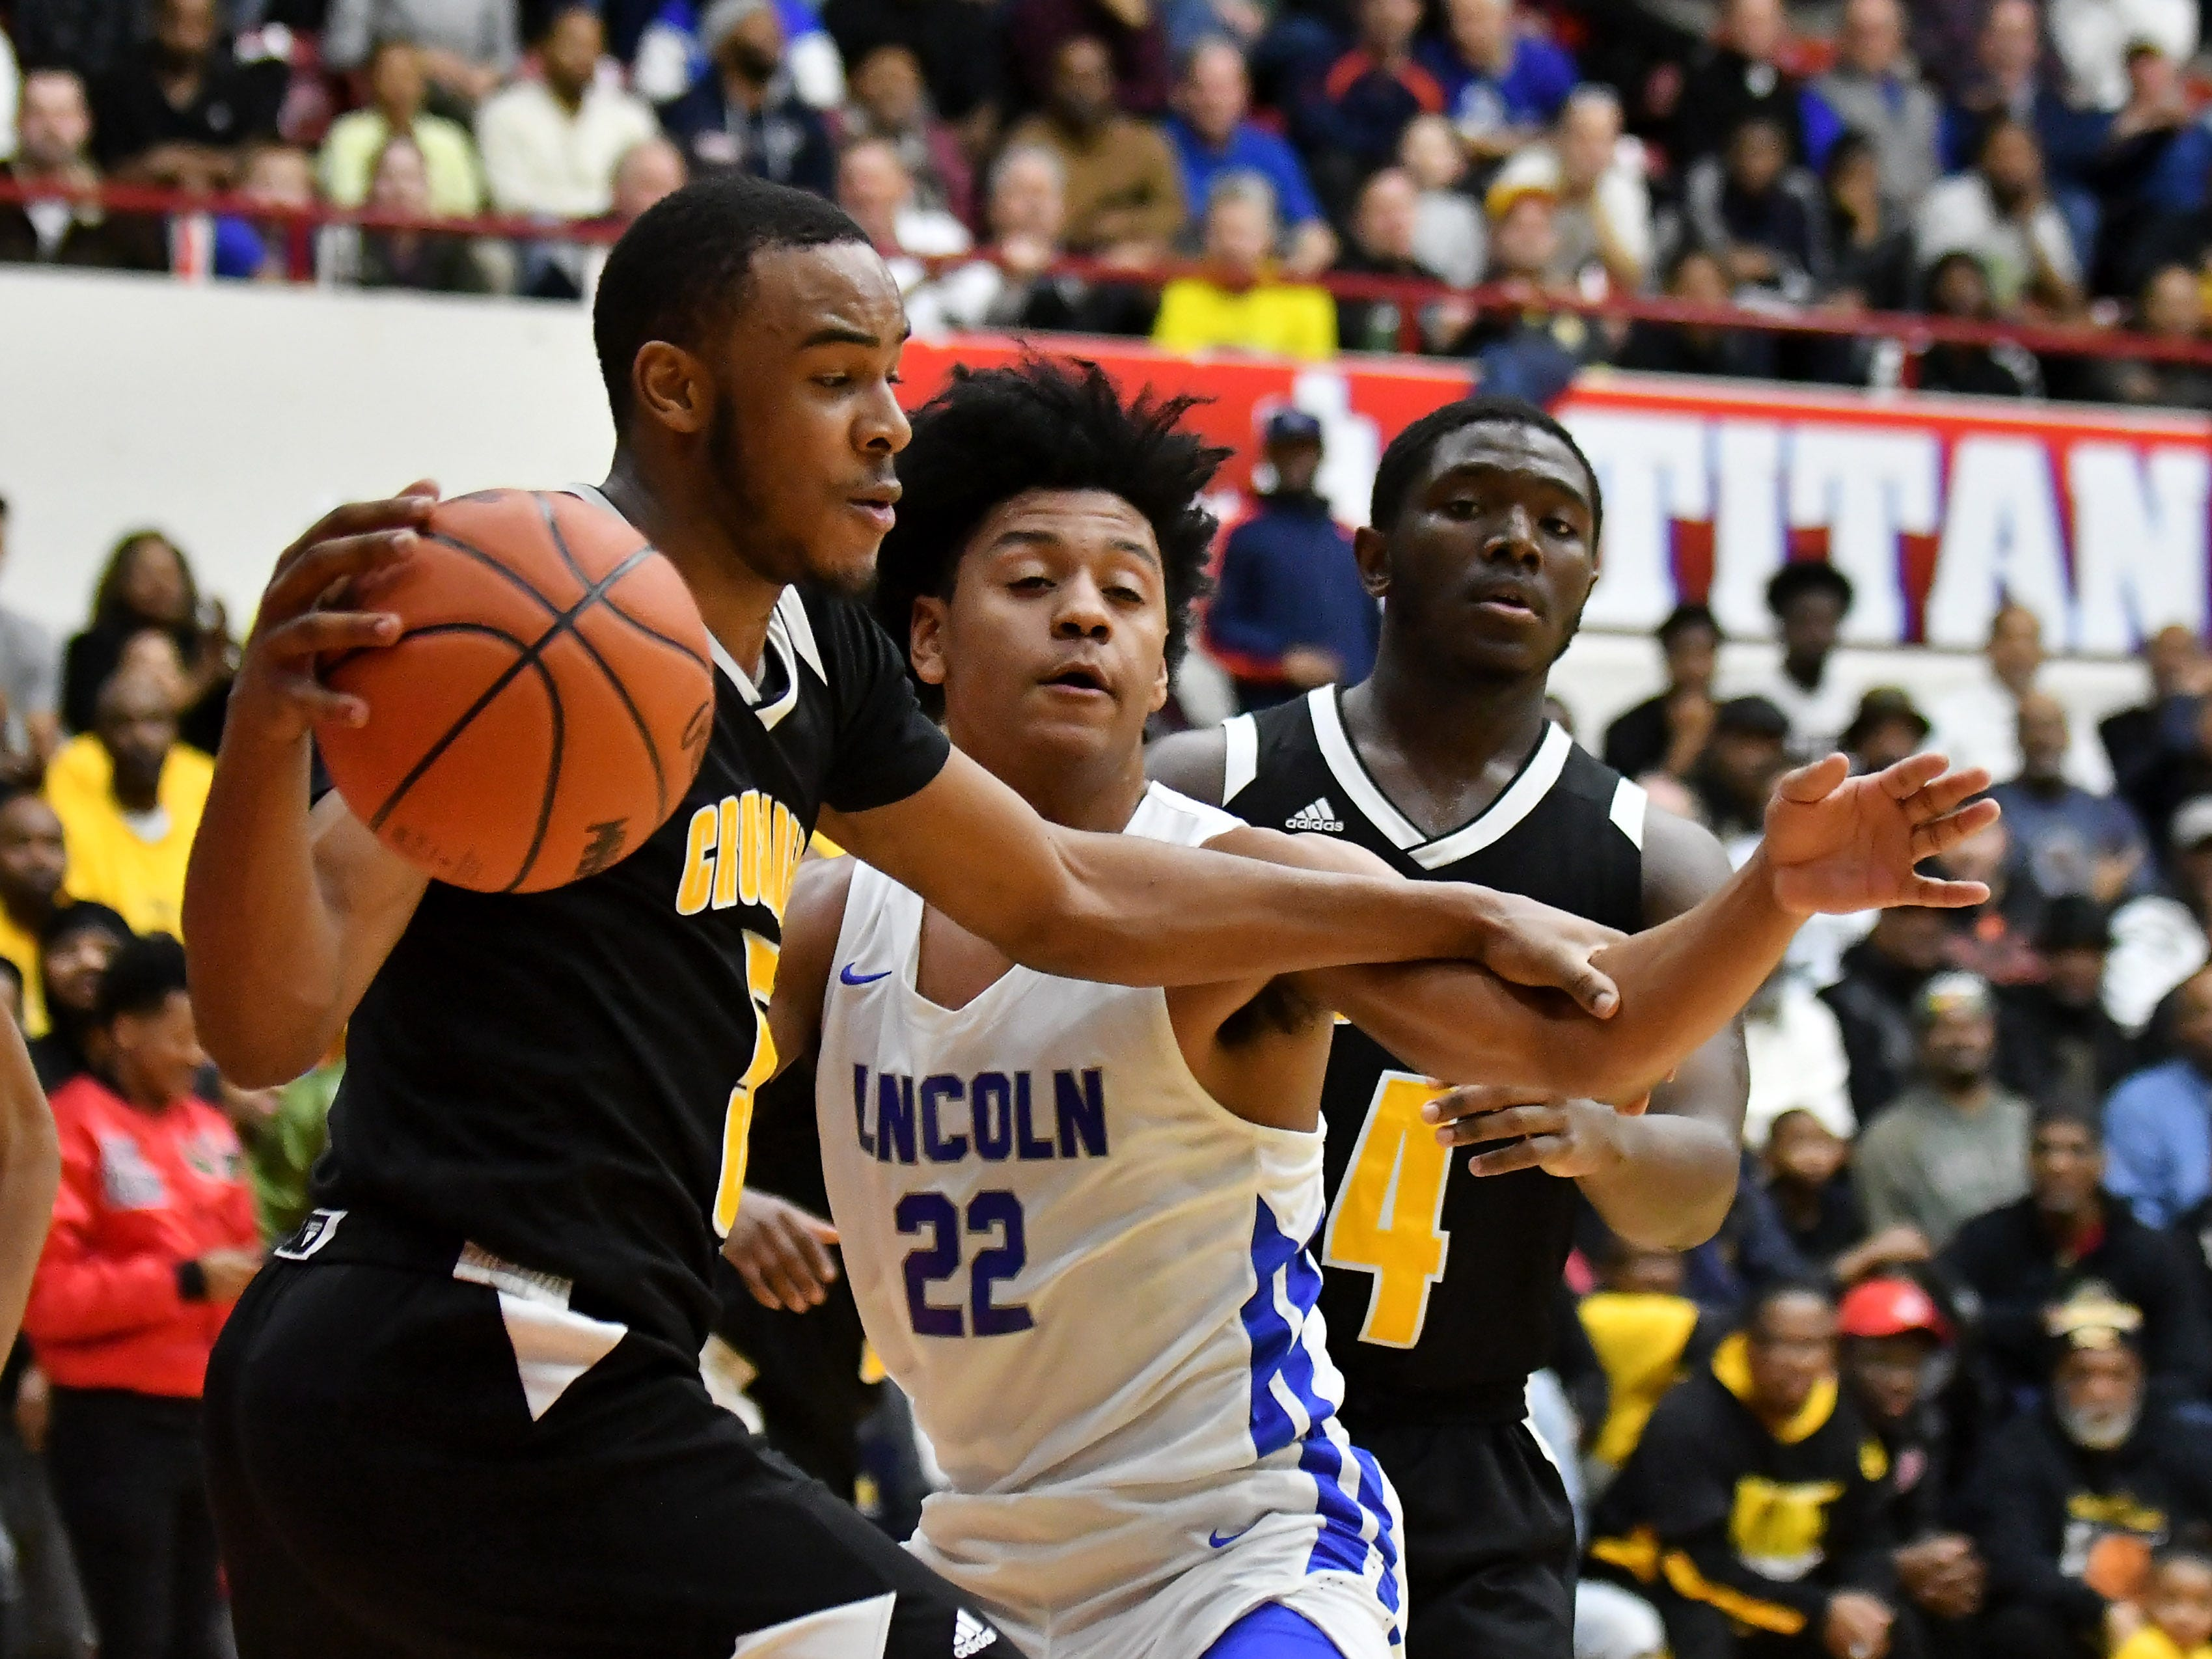 Lincoln's Ibn Abdul-Rahman (22) guards King's John Massey, Jr. in the last minute of the game in the second half.